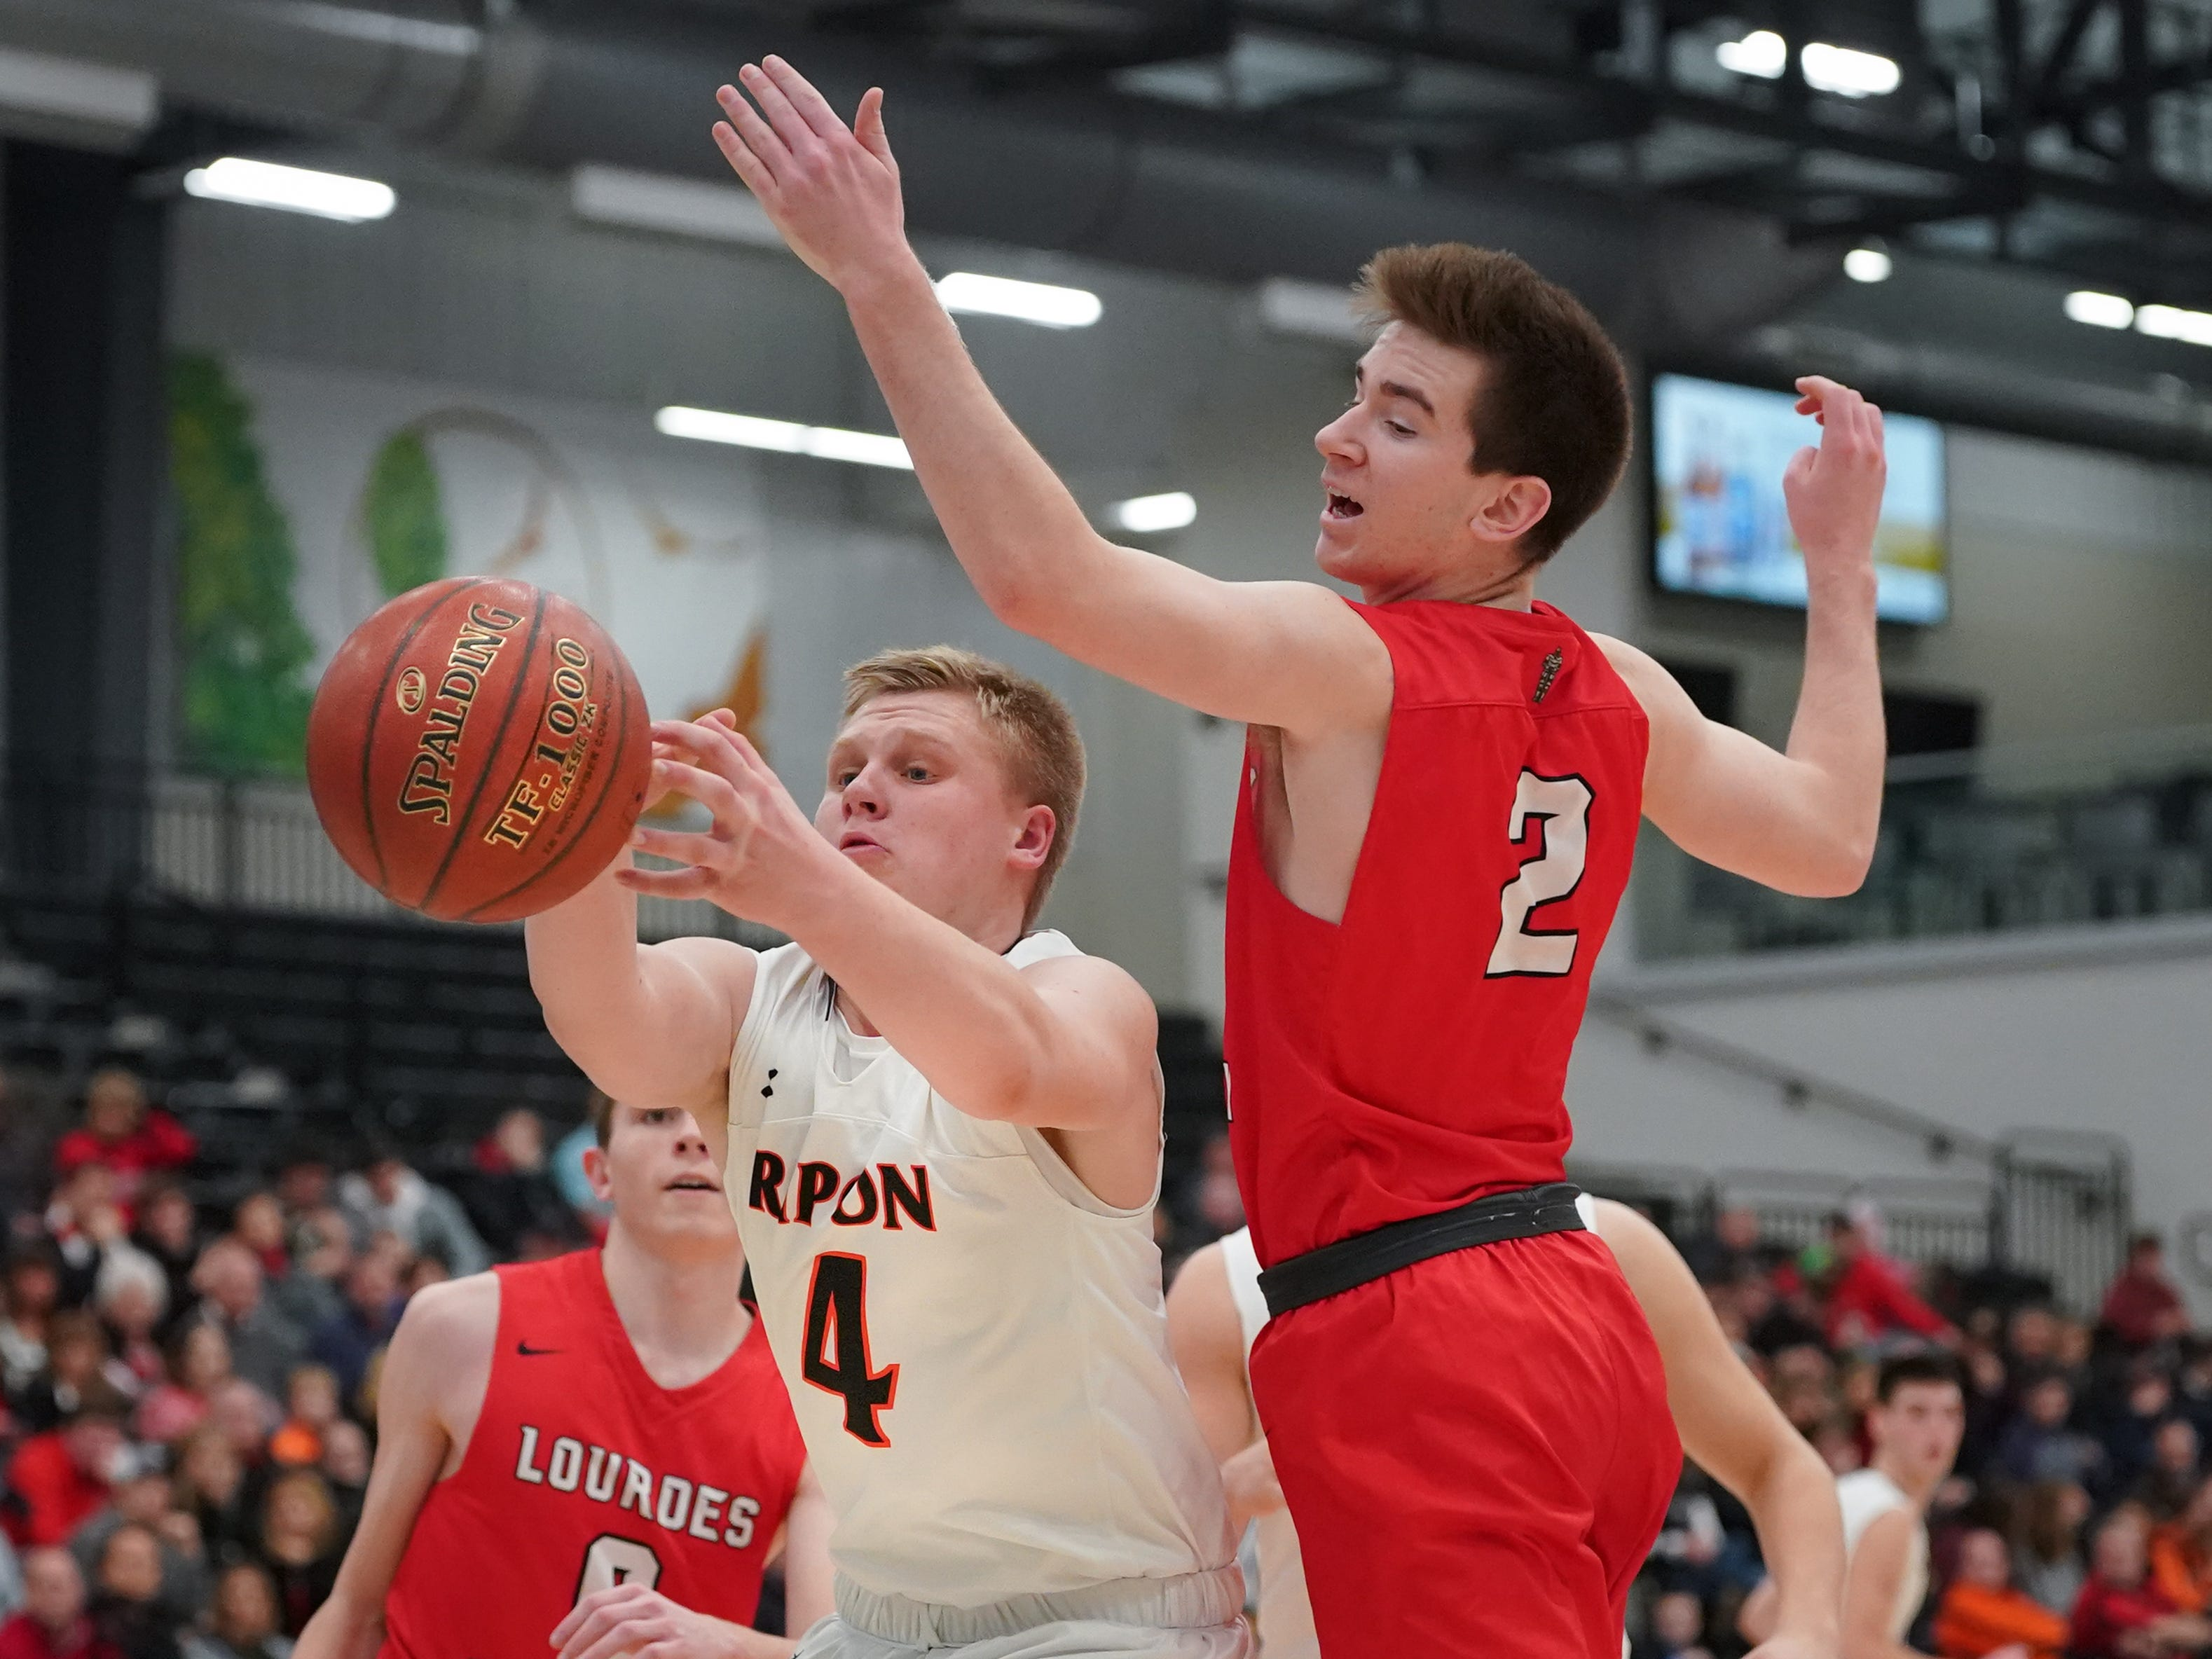 Hunter Auchtung (4) of Ripon battles Henry Noone (2) of Lourdes for a rebound. The Lourdes Knights and Ripon Tigers met in a nonconference basketball game Saturday afternoon, December 29, 2018 at the Menomonie Nation Arena in Oshkosh.